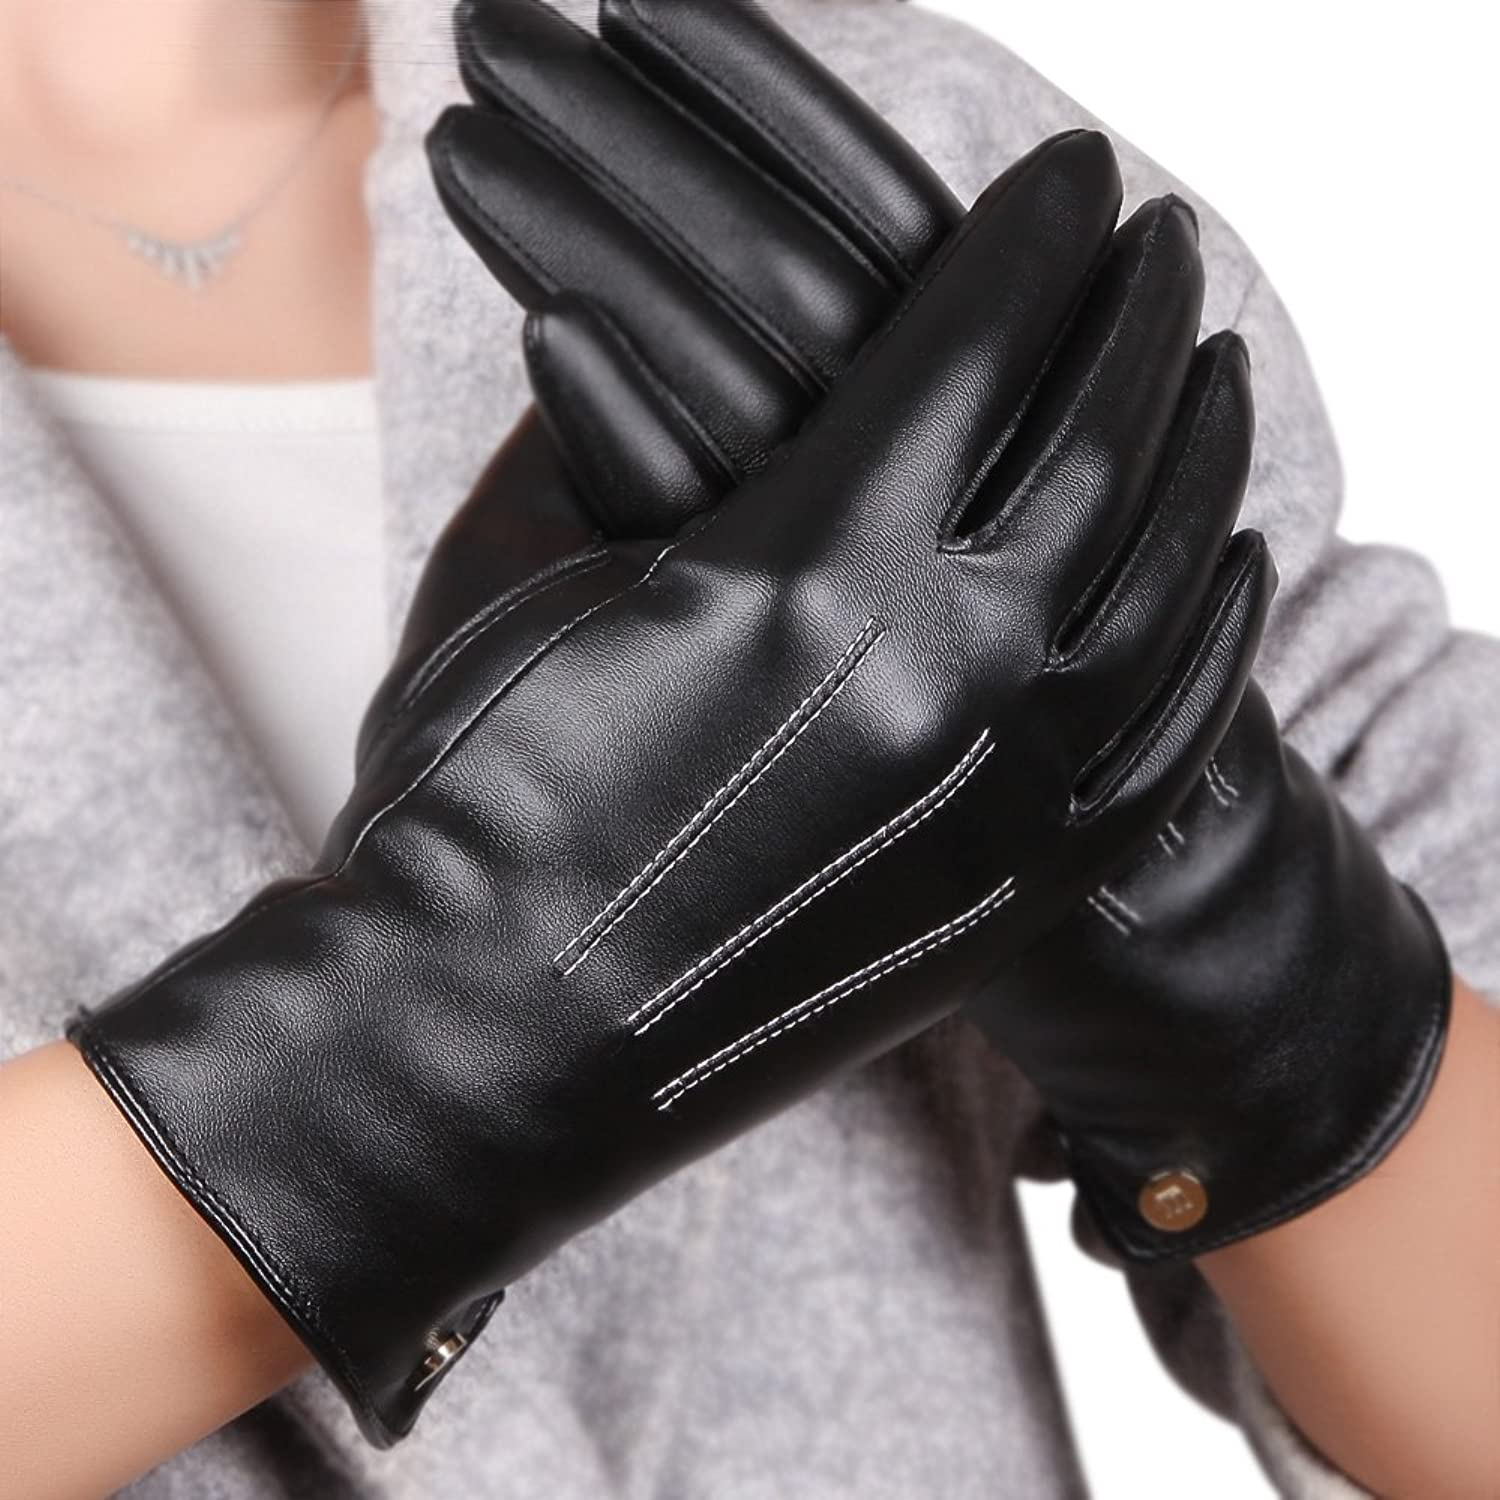 Fake leather driving gloves - Womens Touchscreen Texting Winter Pu Leather Gloves Driving Outdoor Fleece Lining 6 5 Black At Amazon Women S Clothing Store